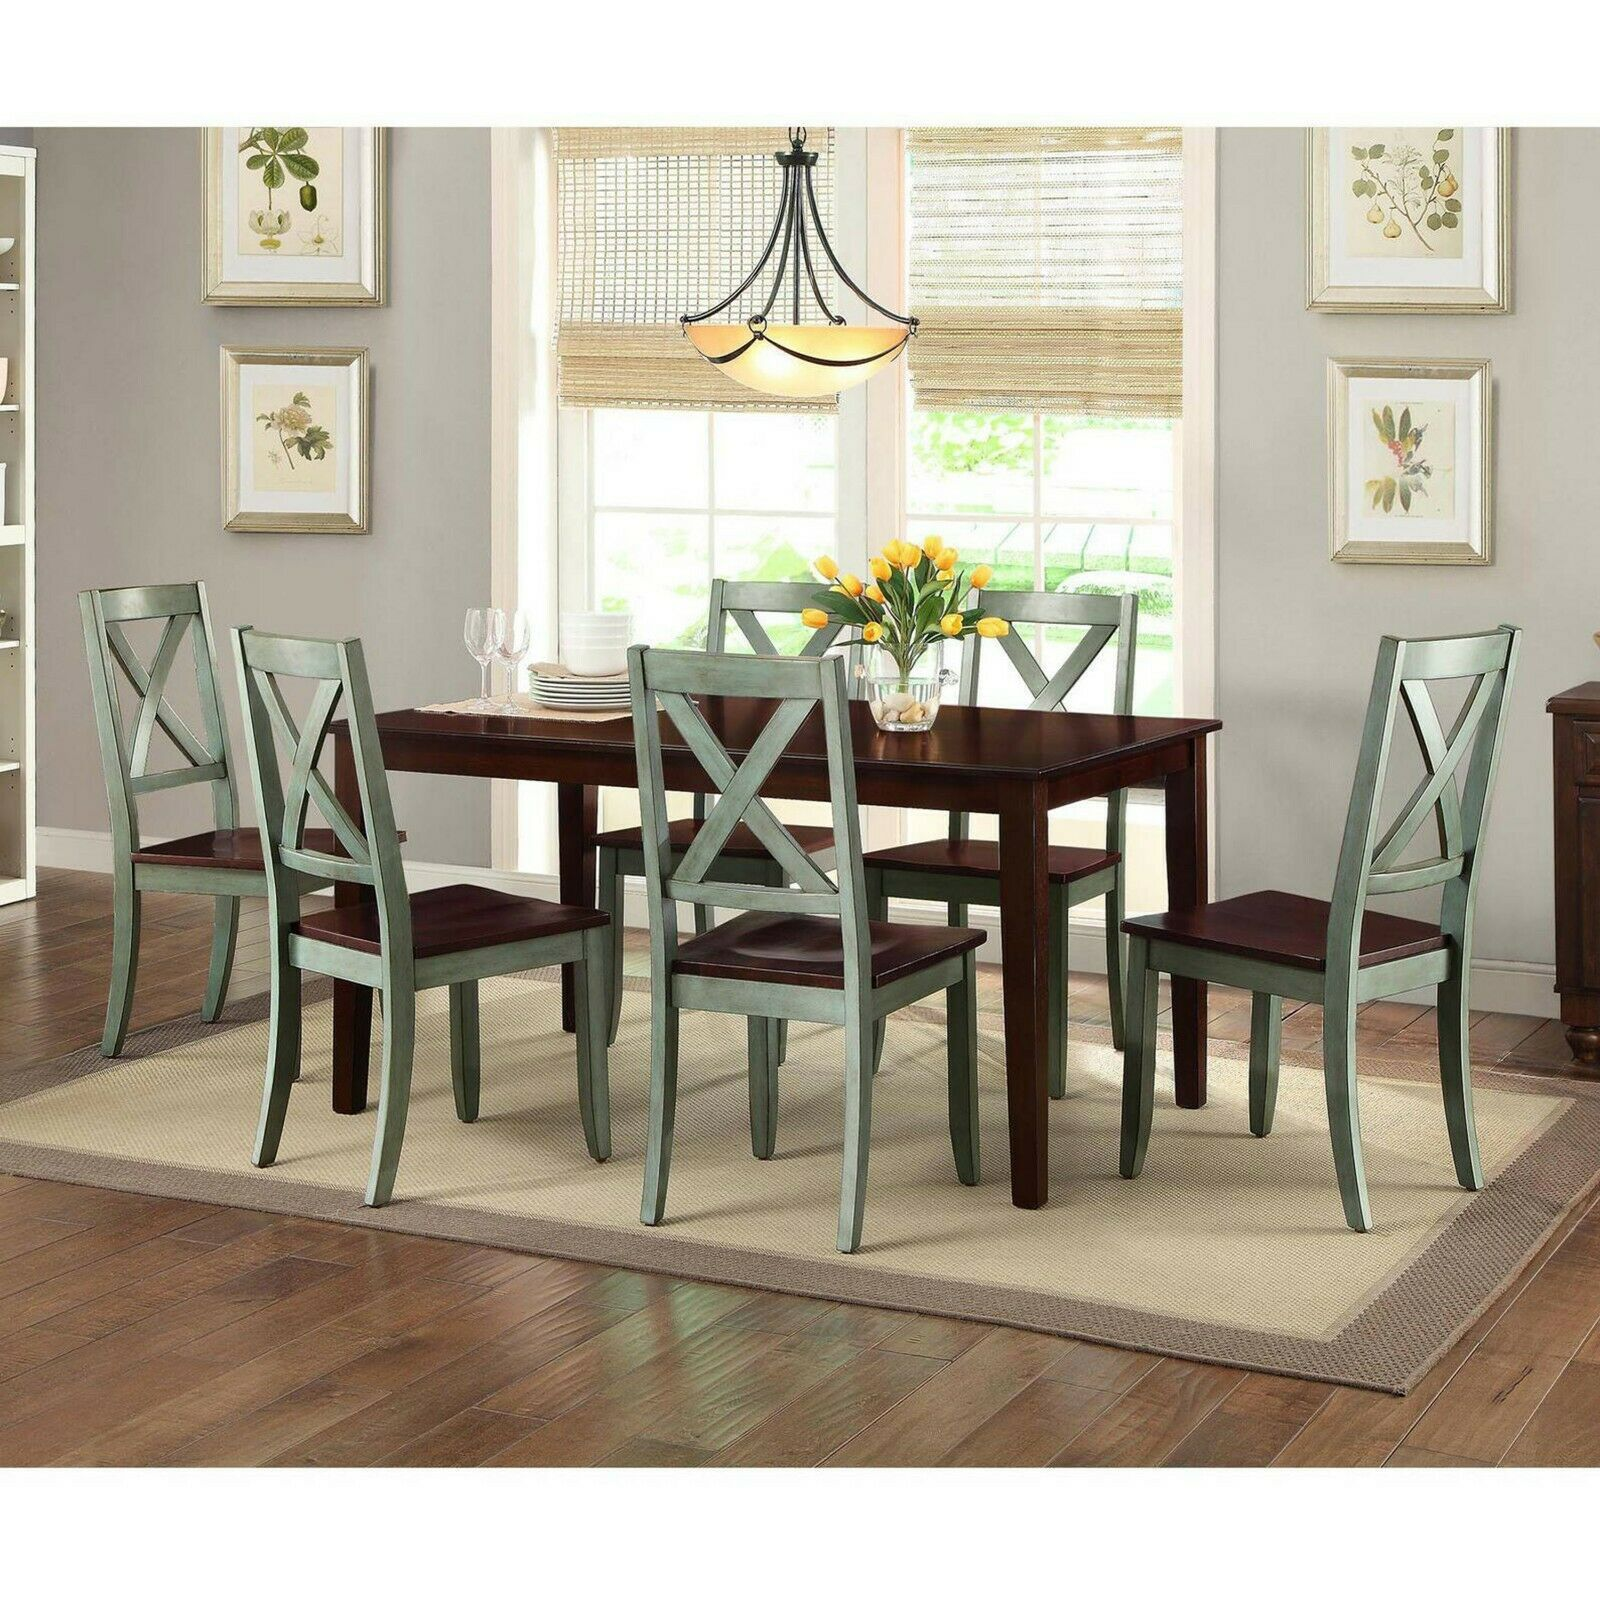 815ff46bafd66cd8103e1ad08ee50c55 - Better Homes And Gardens Bankston Dining Chair White 2 Pack